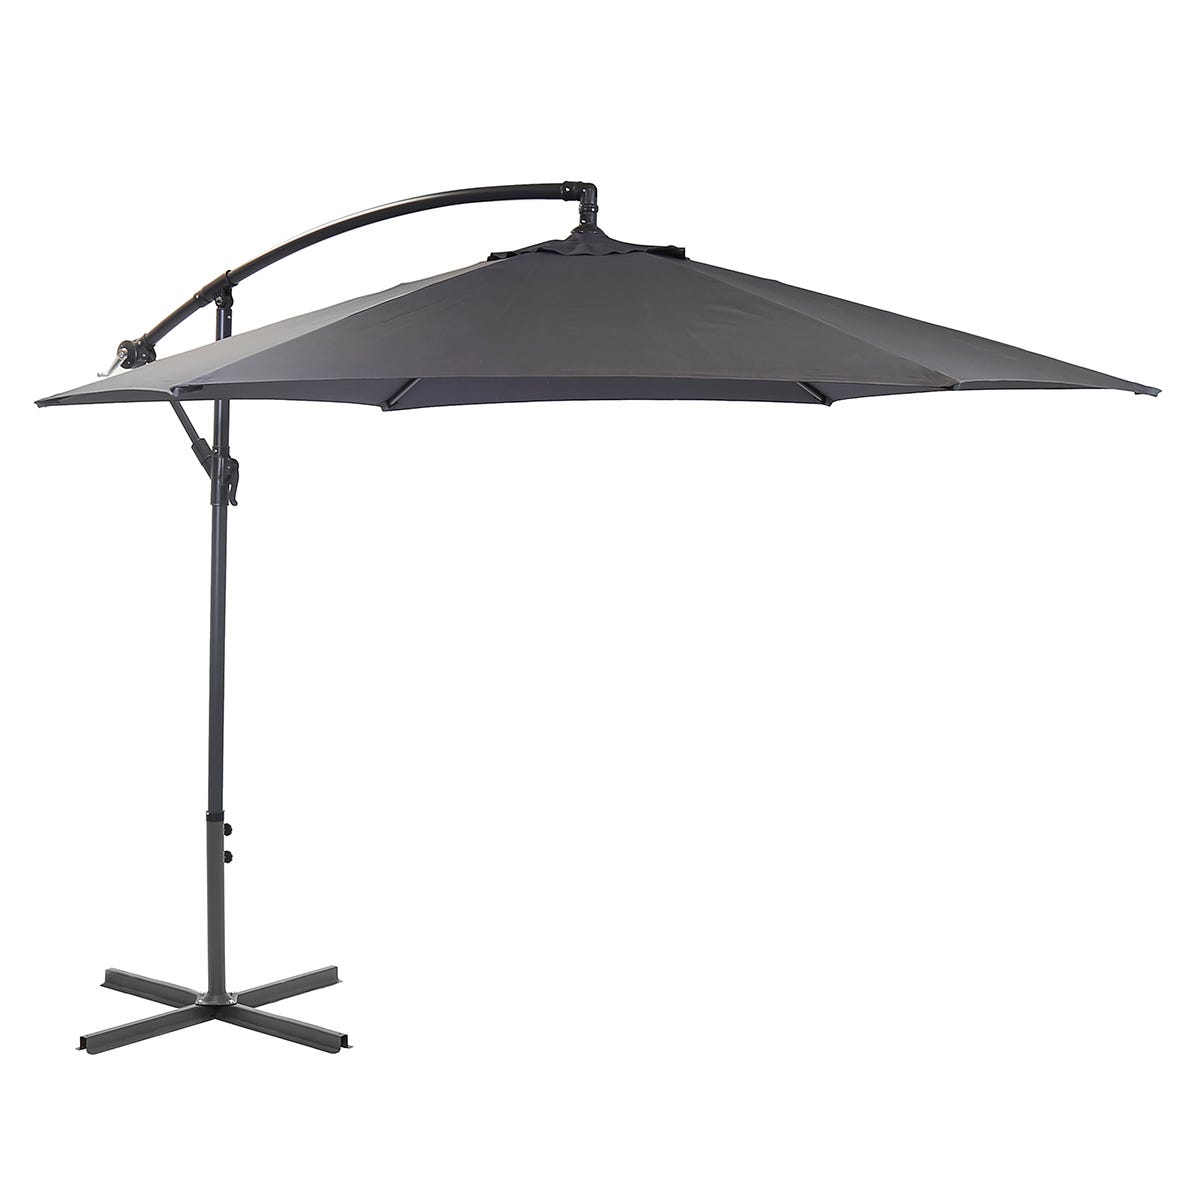 Charles Bentley 3m Parasol (base not included) - Grey